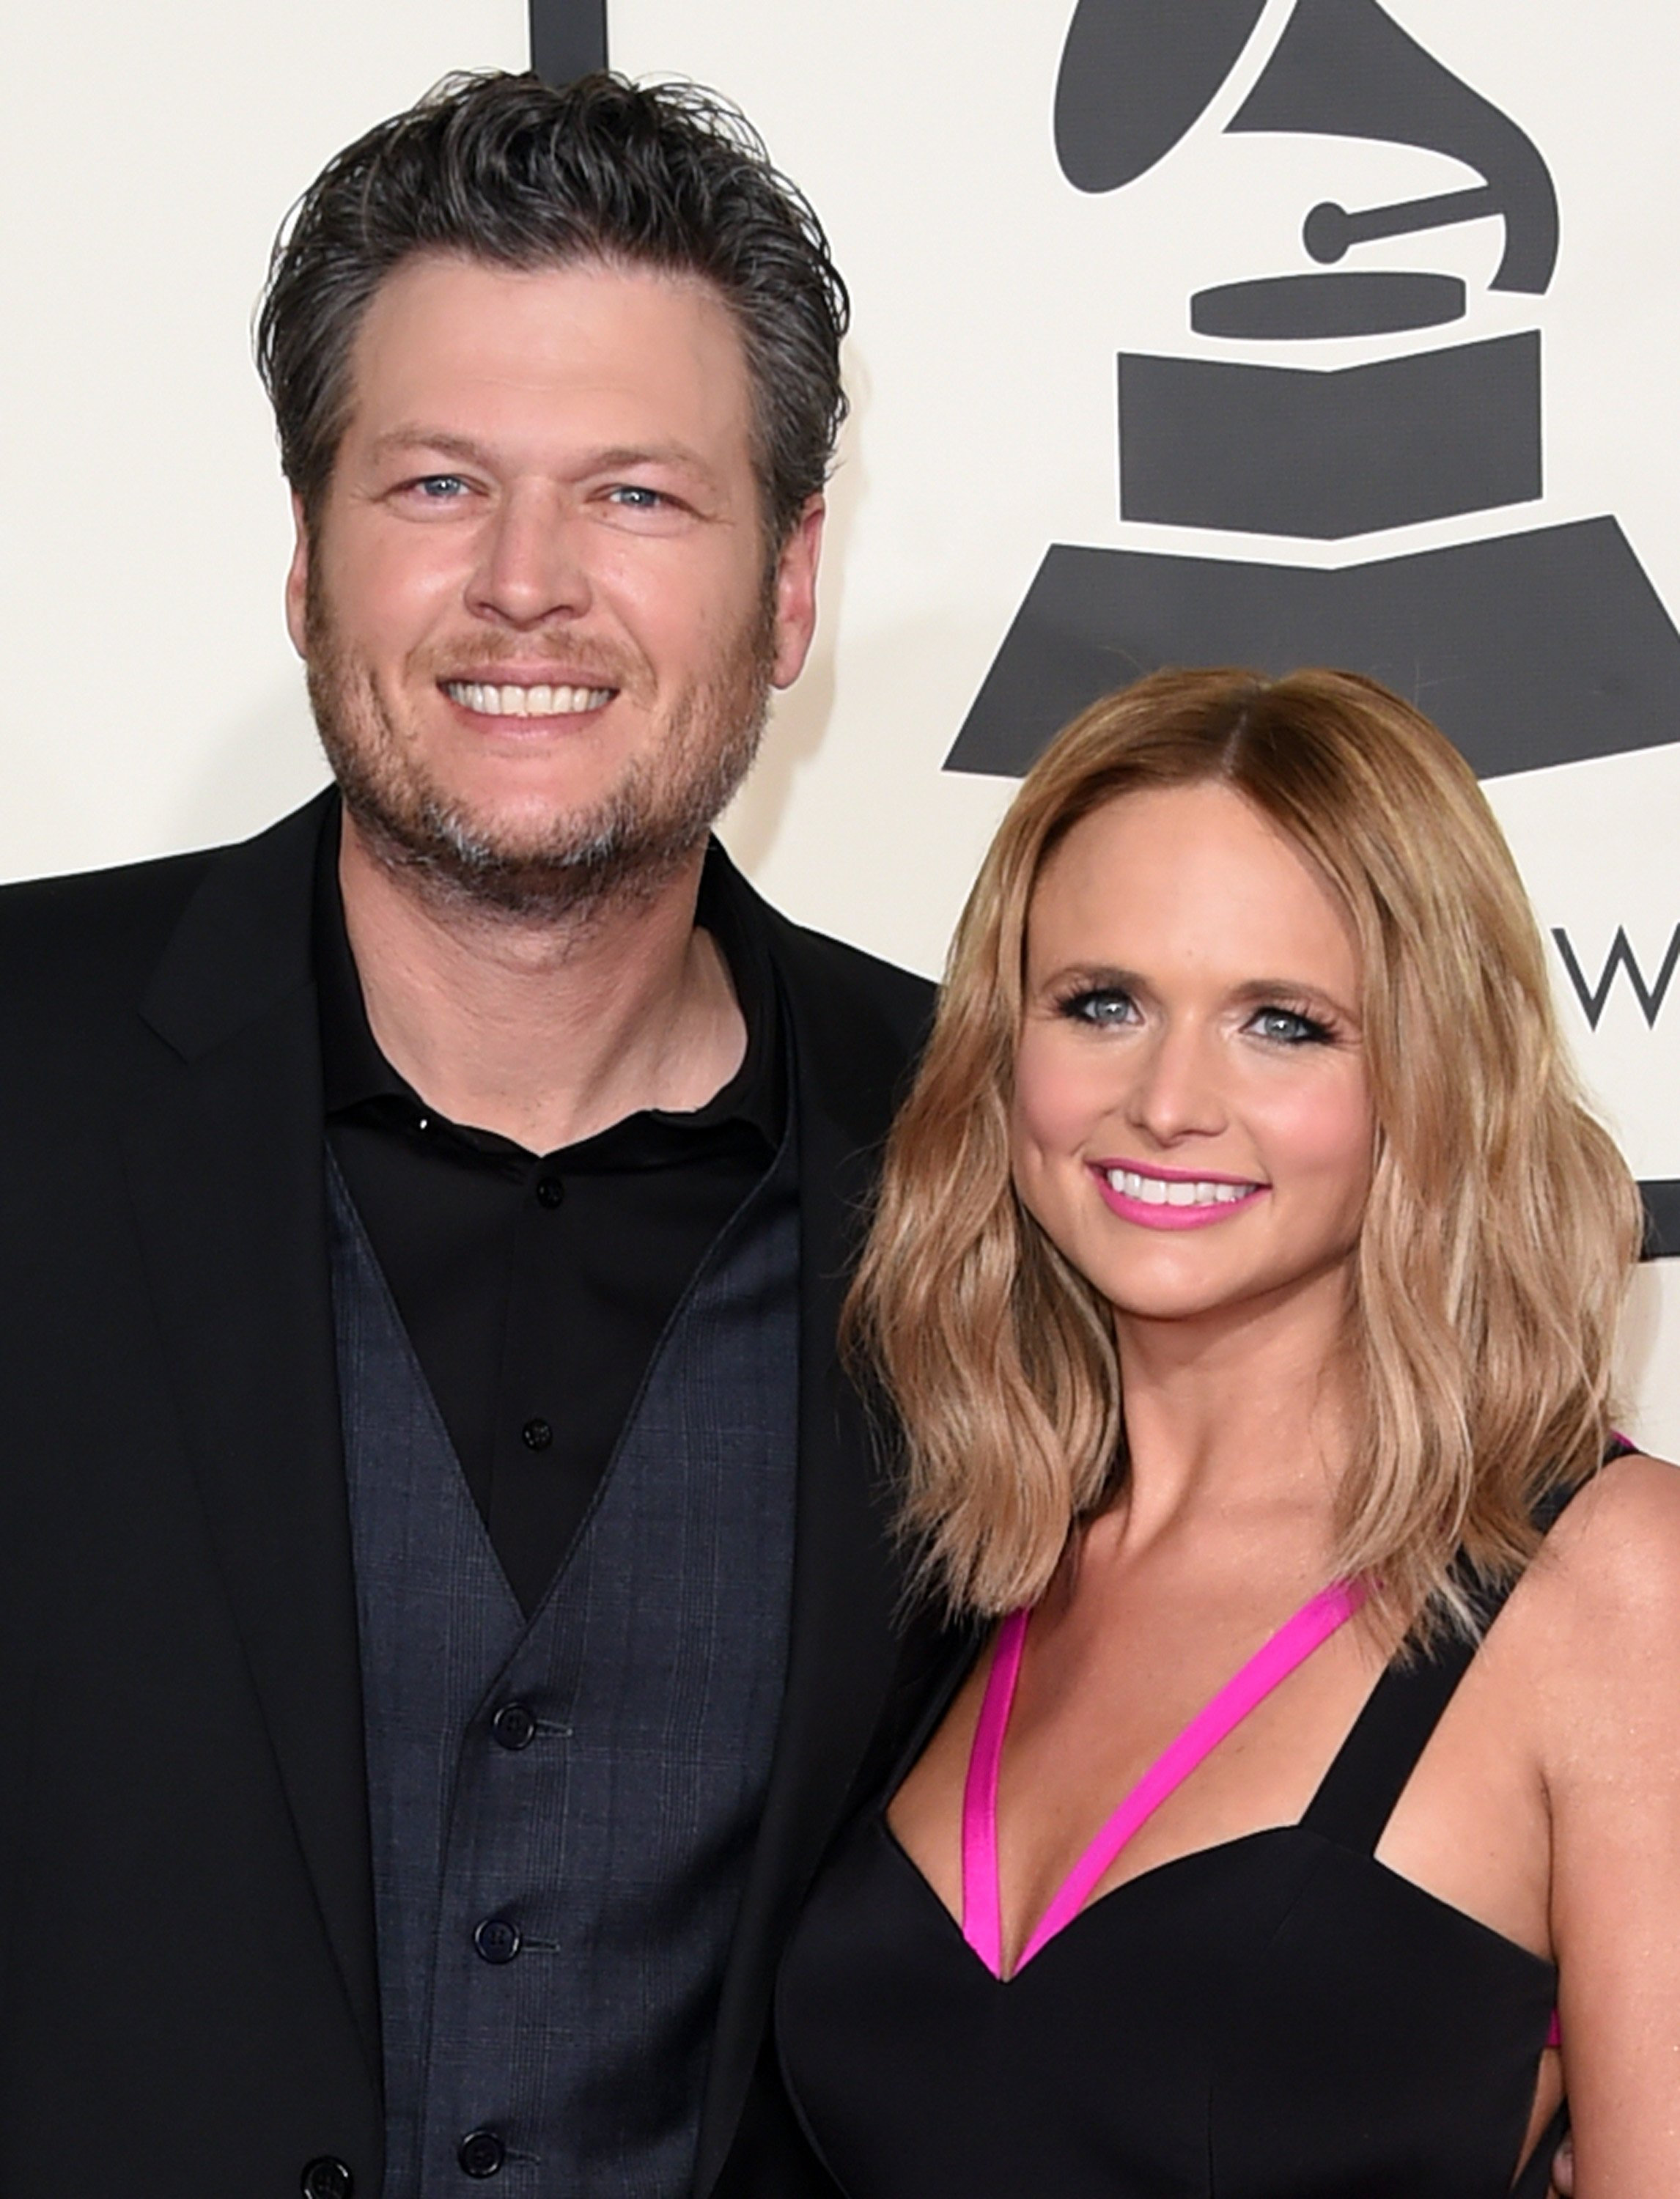 Blake Shelton (L) and Miranda Lambert attend The 57th Annual GRAMMY Awards at the STAPLES Center on February 8, 2015 | Photo: Getty Images